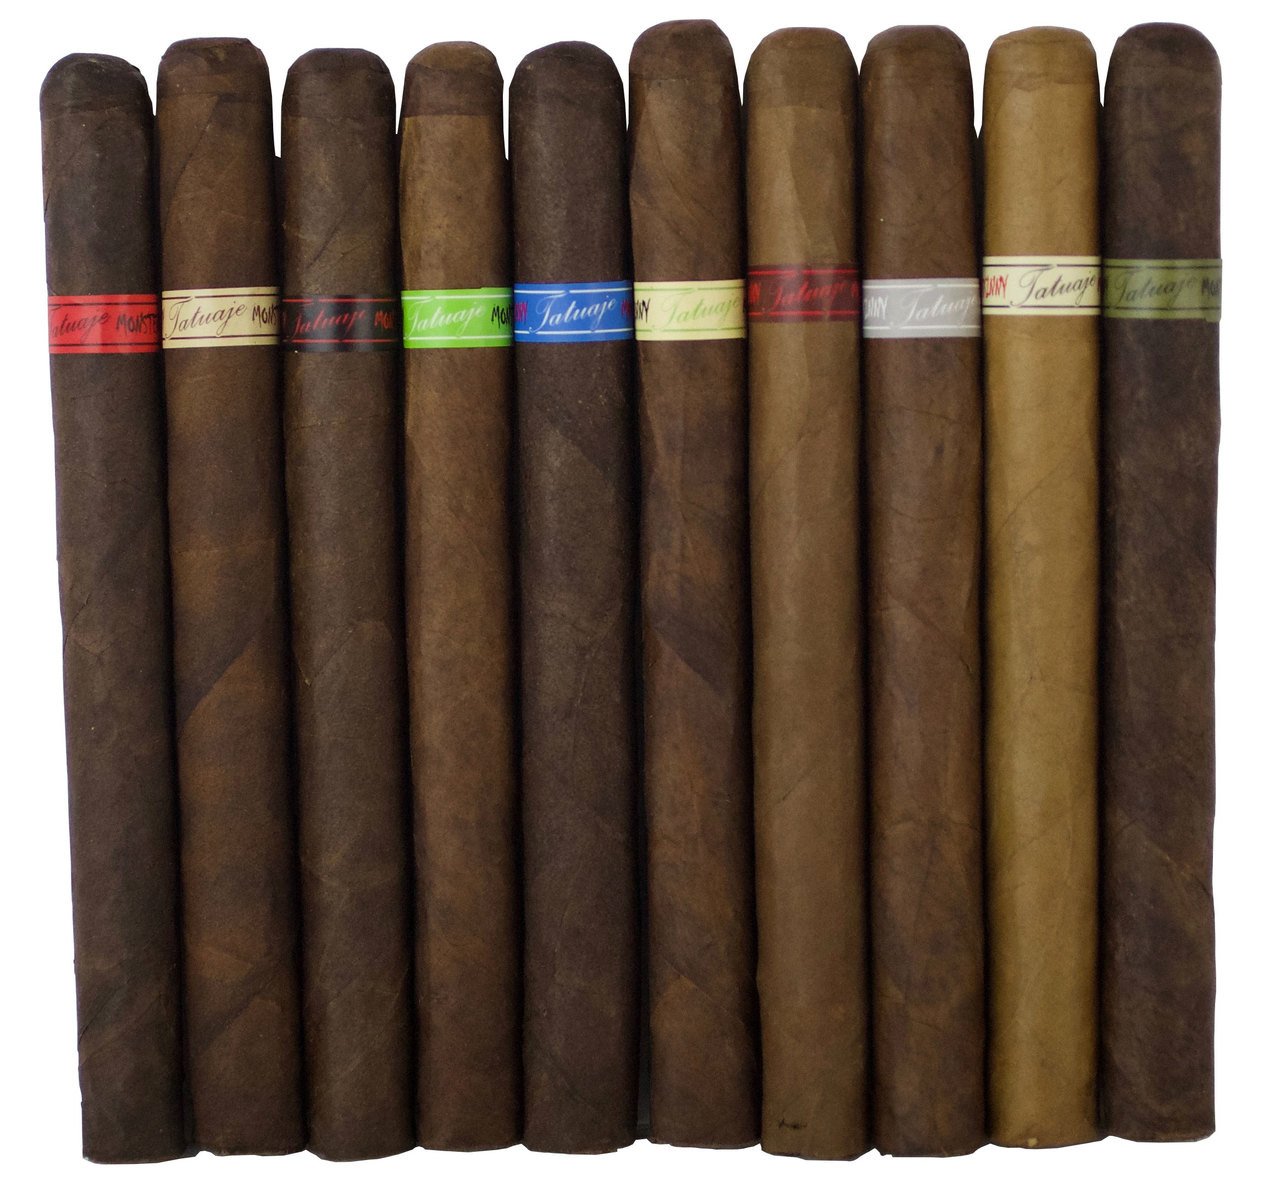 Tatuaje Limited Edition Monster Mash Sampler